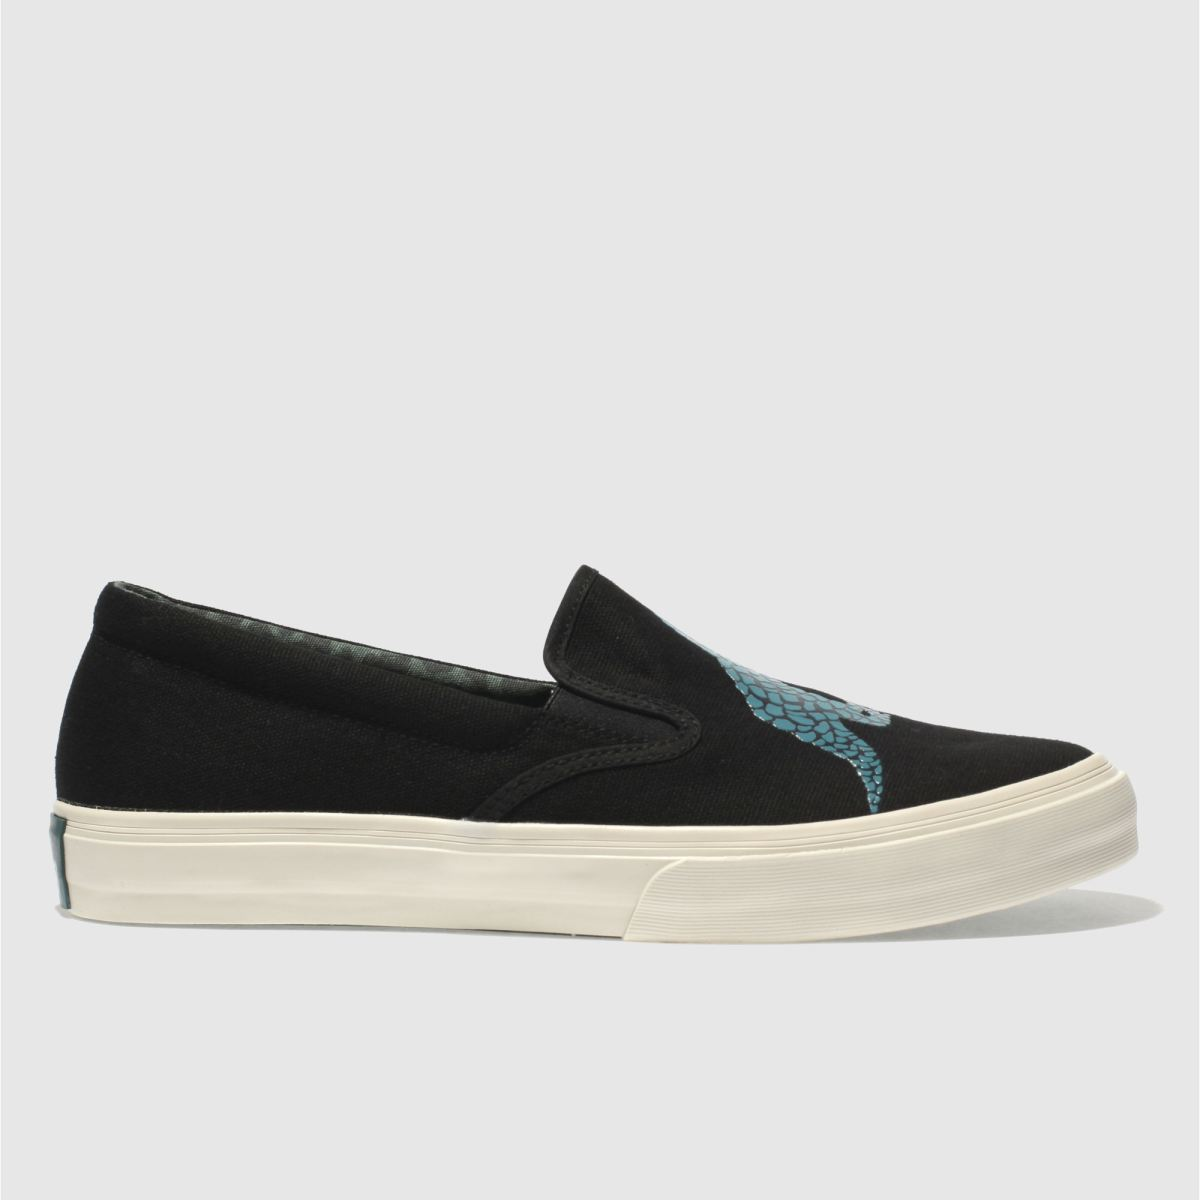 paul smith shoe ps Paul Smith Shoe Ps Black Clyde Trainers